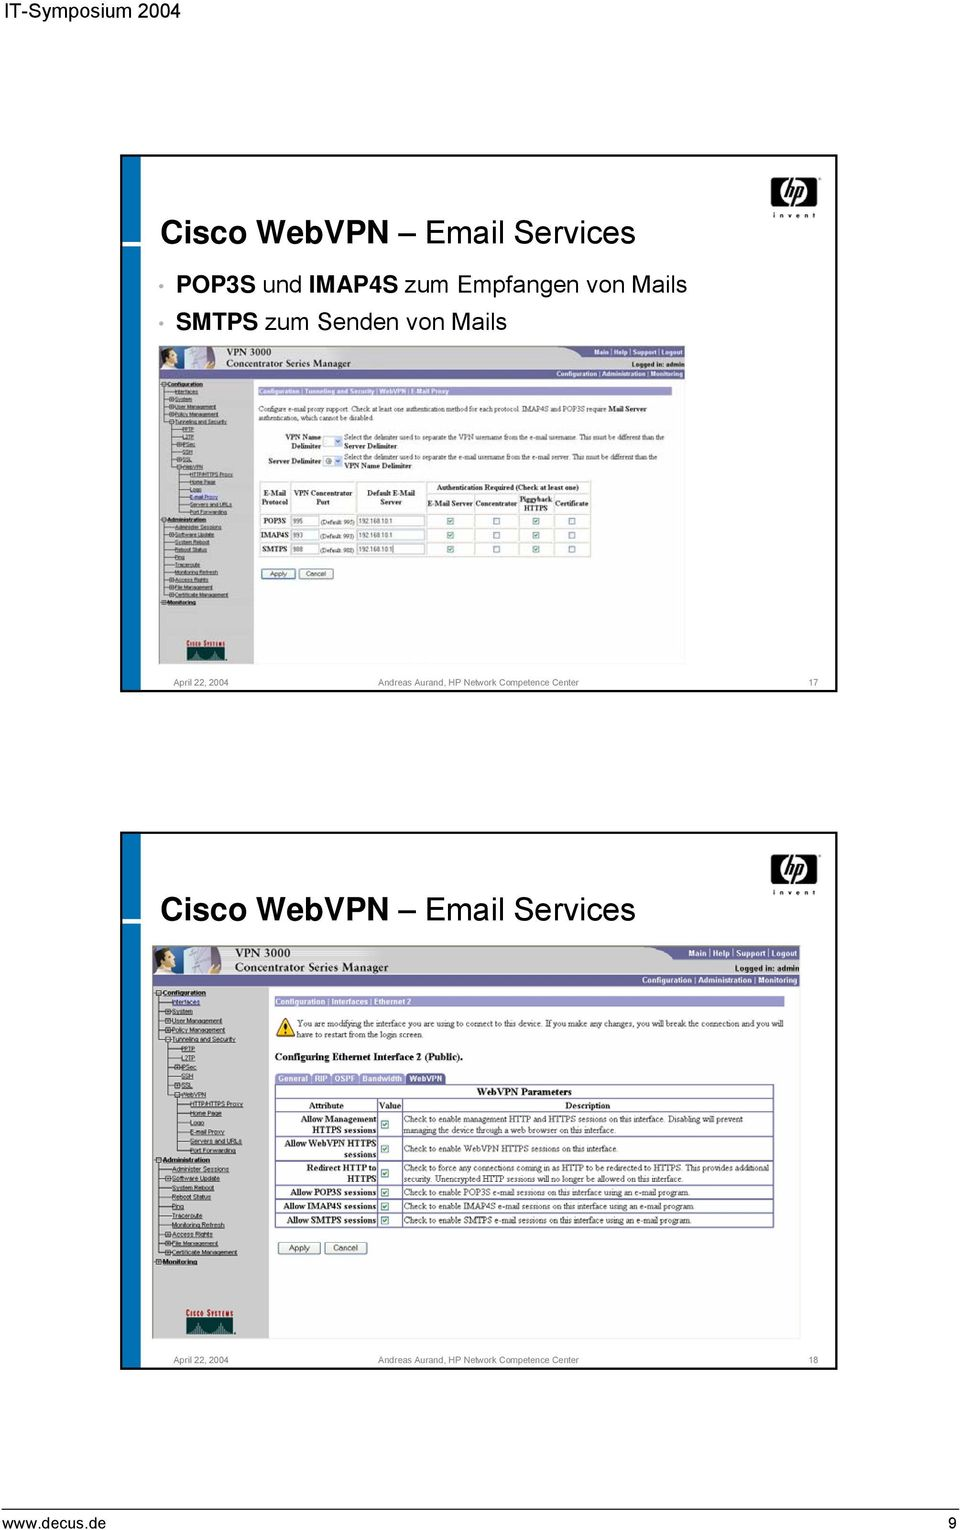 Aurand, HP Network Competence Center 17 Cisco WebVPN Email